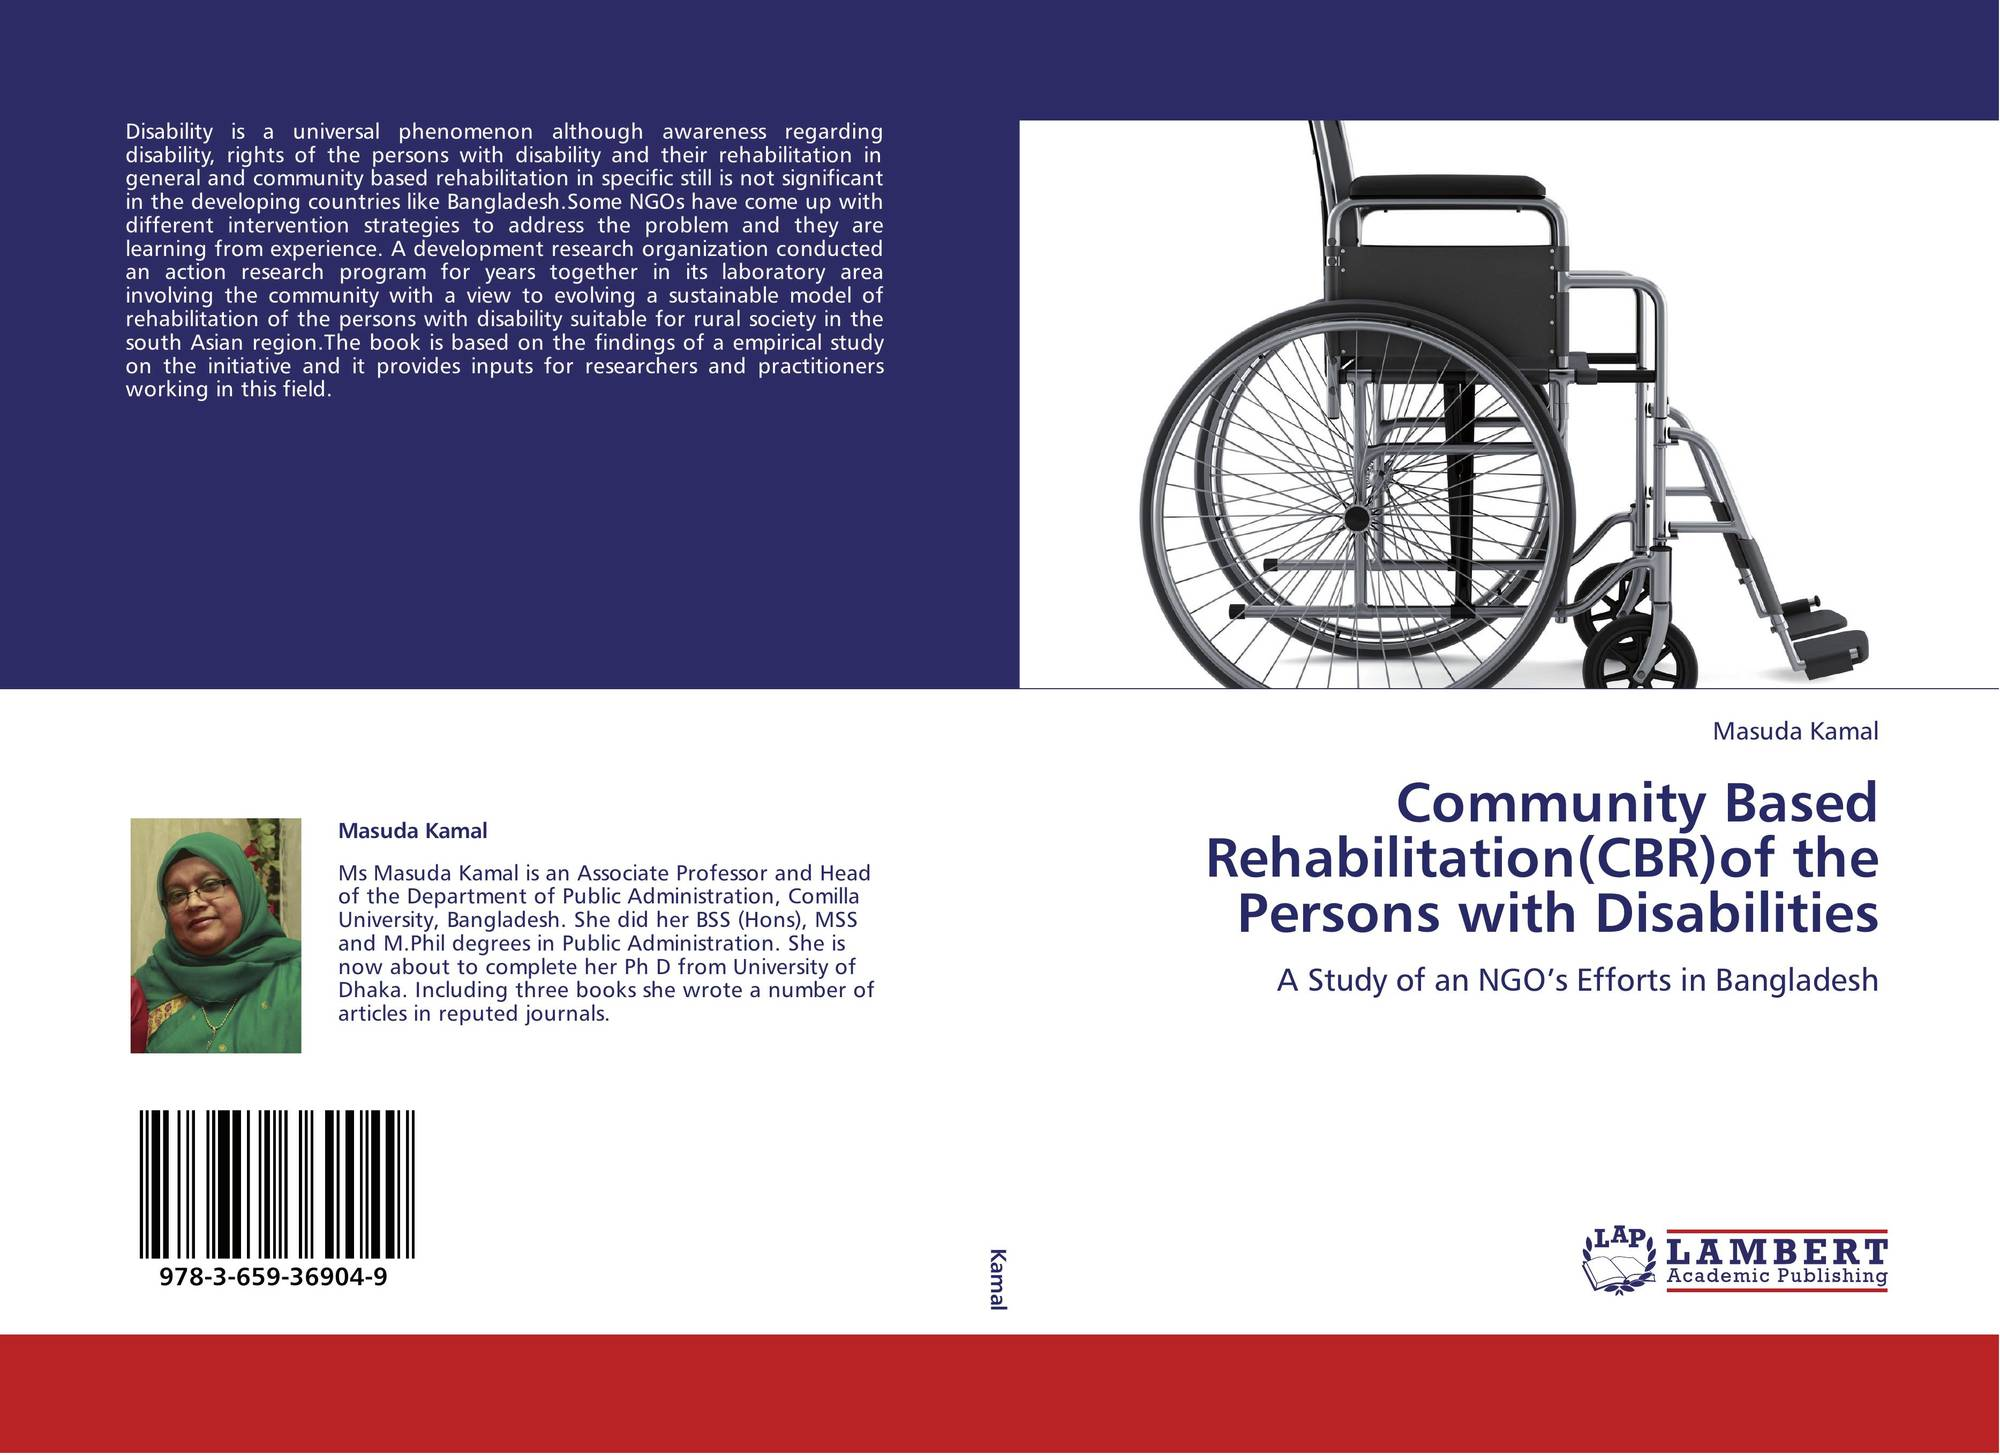 community based rehabilitation Objective the aim of this study was to evaluate the effectiveness of a community-based rehabilitat.